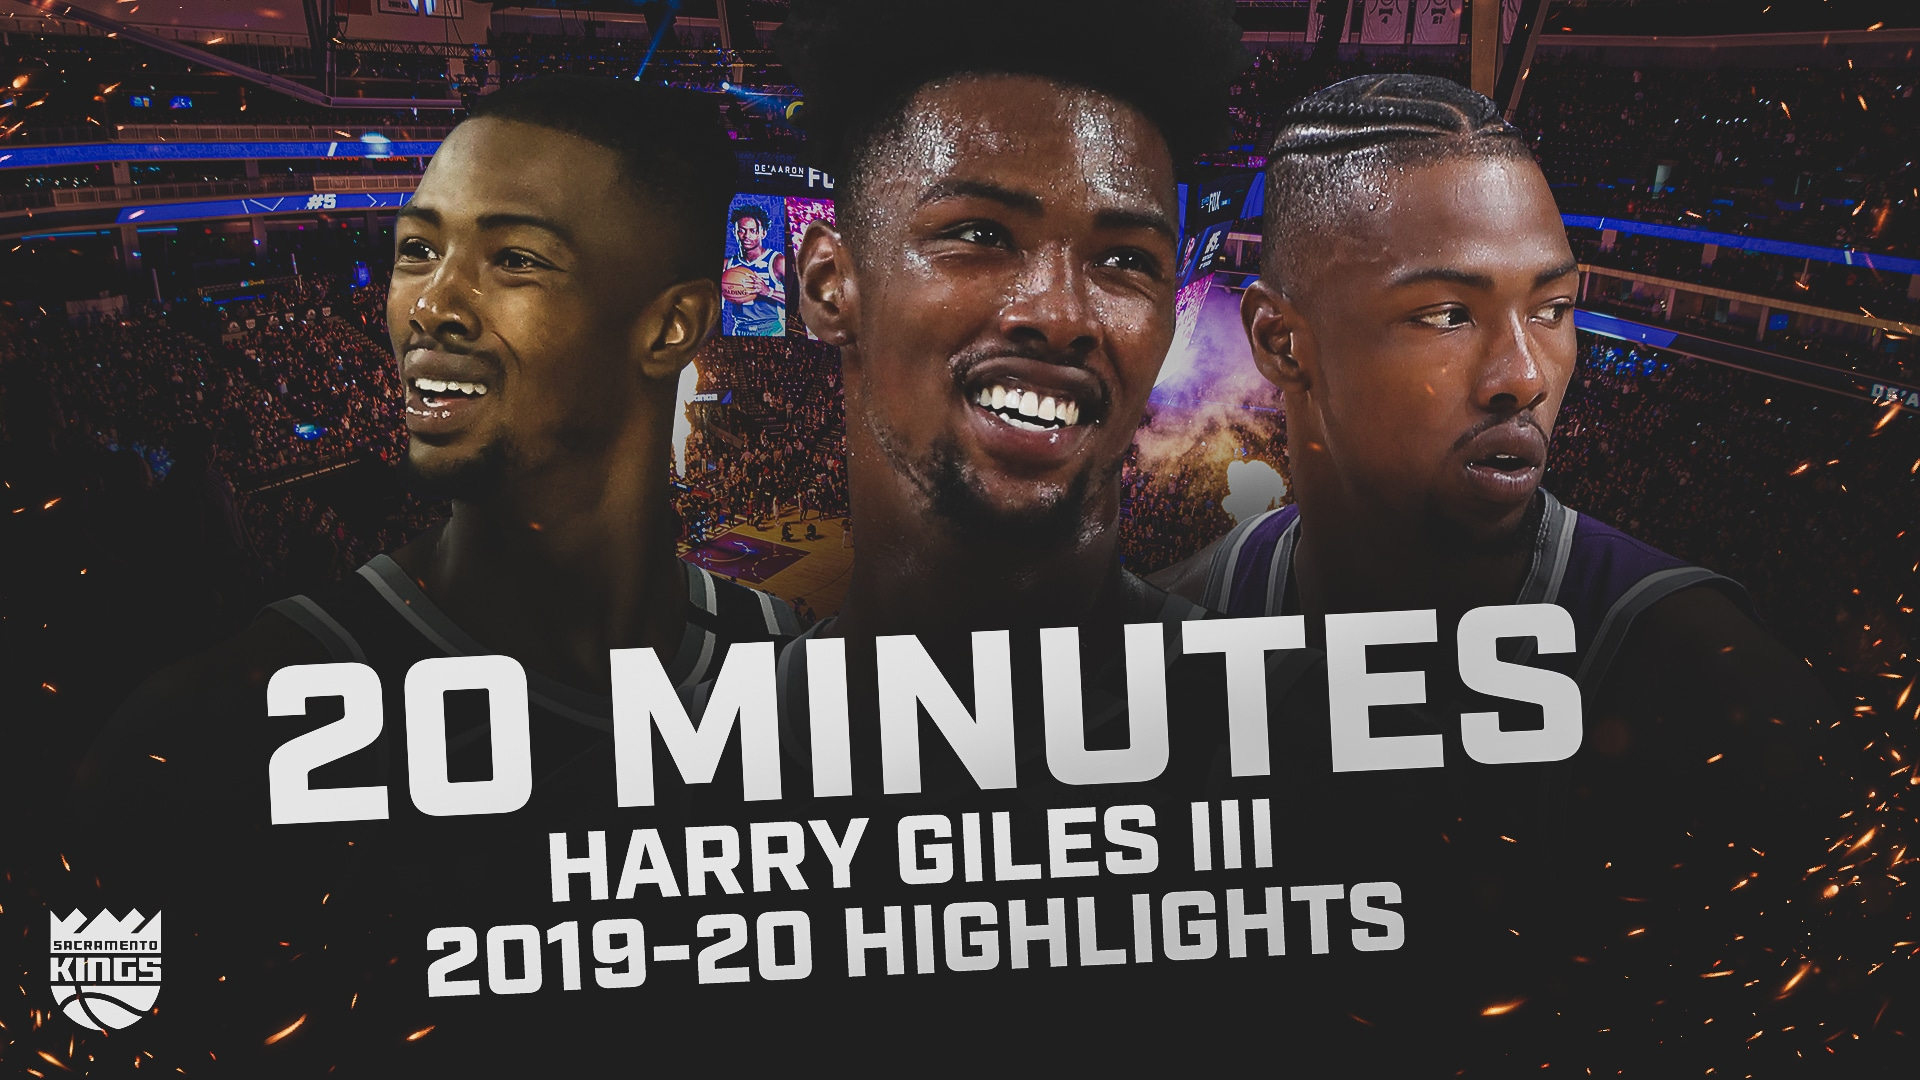 2019-20 Harry Giles III Highlights